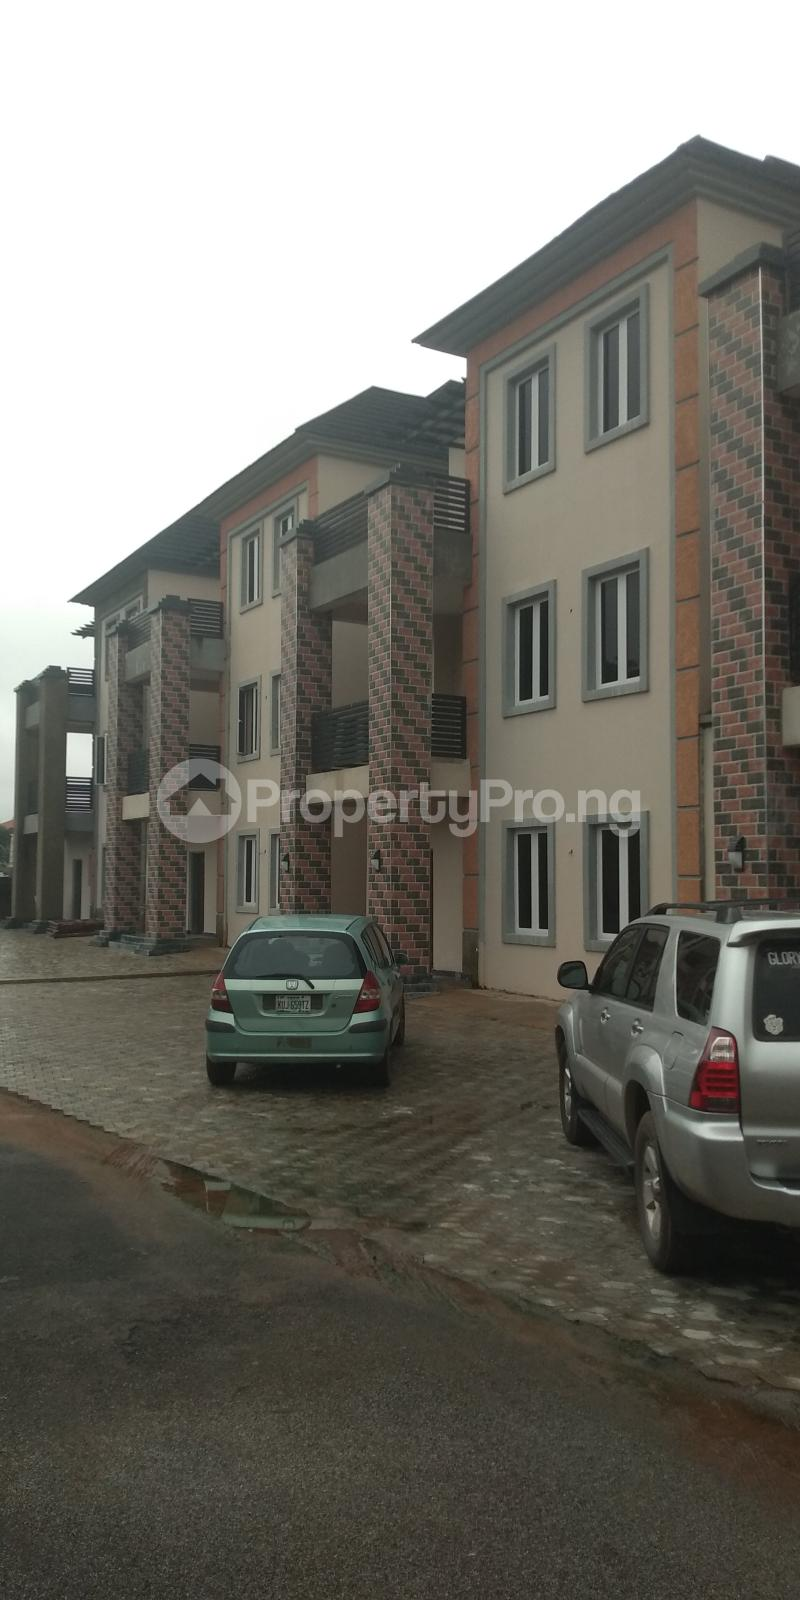 5 bedroom Flat / Apartment for sale Life Camp Abuja - 15